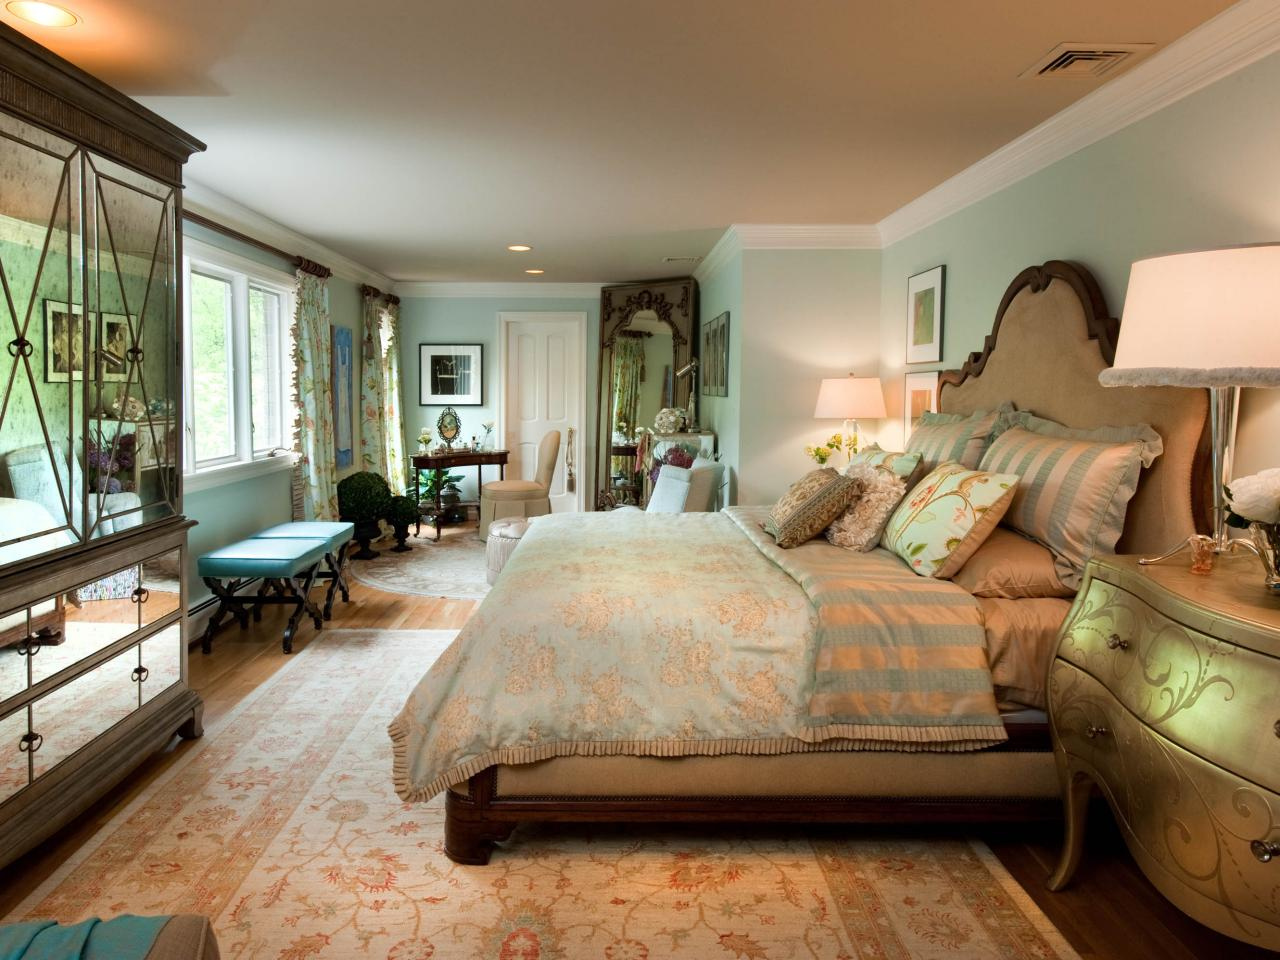 Feminine retreat bedroom heather mcmanus hgtv for New house bedroom ideas